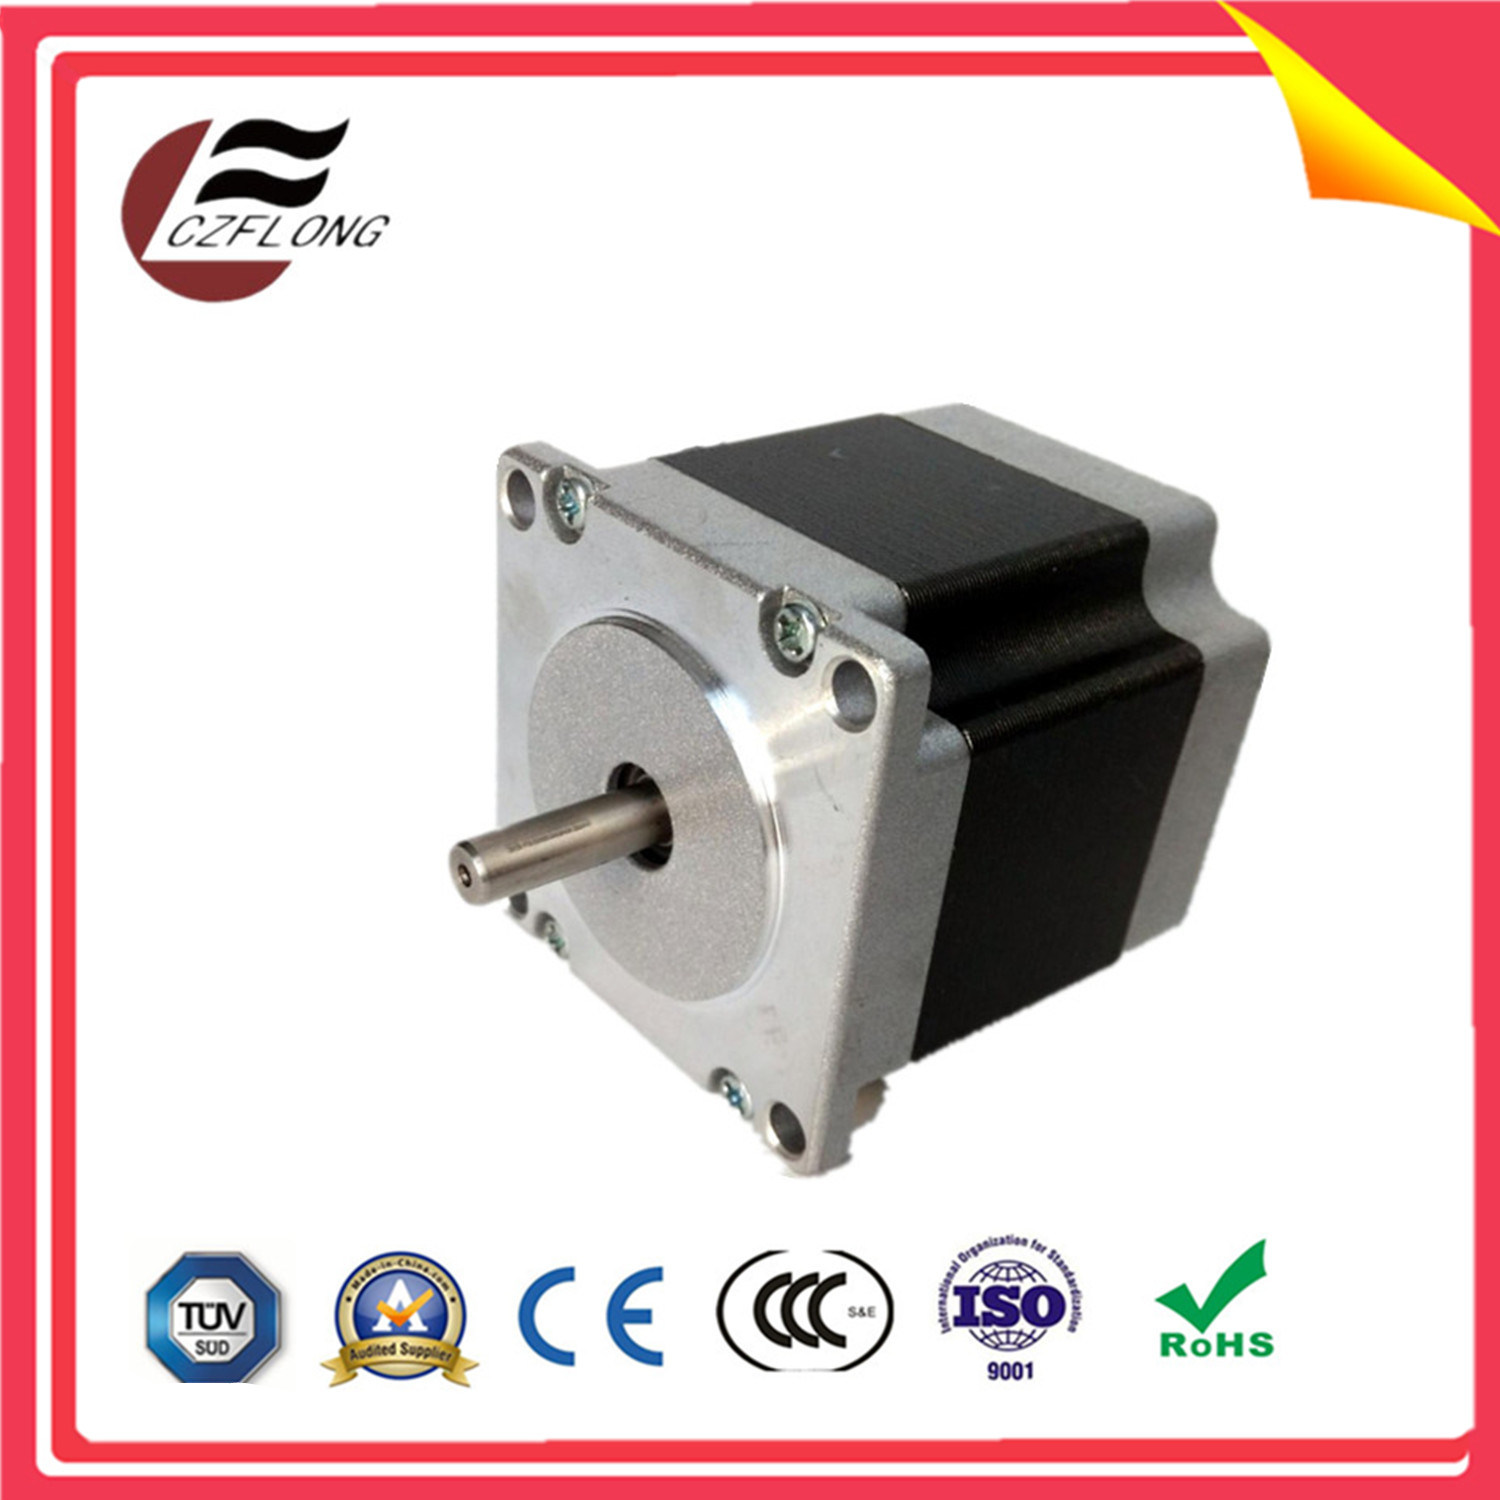 China 5757mm Stepper Brushless Dc Motor For Cnc Auto Parts Sewing Diagram Quotes Machine Electrical Electric